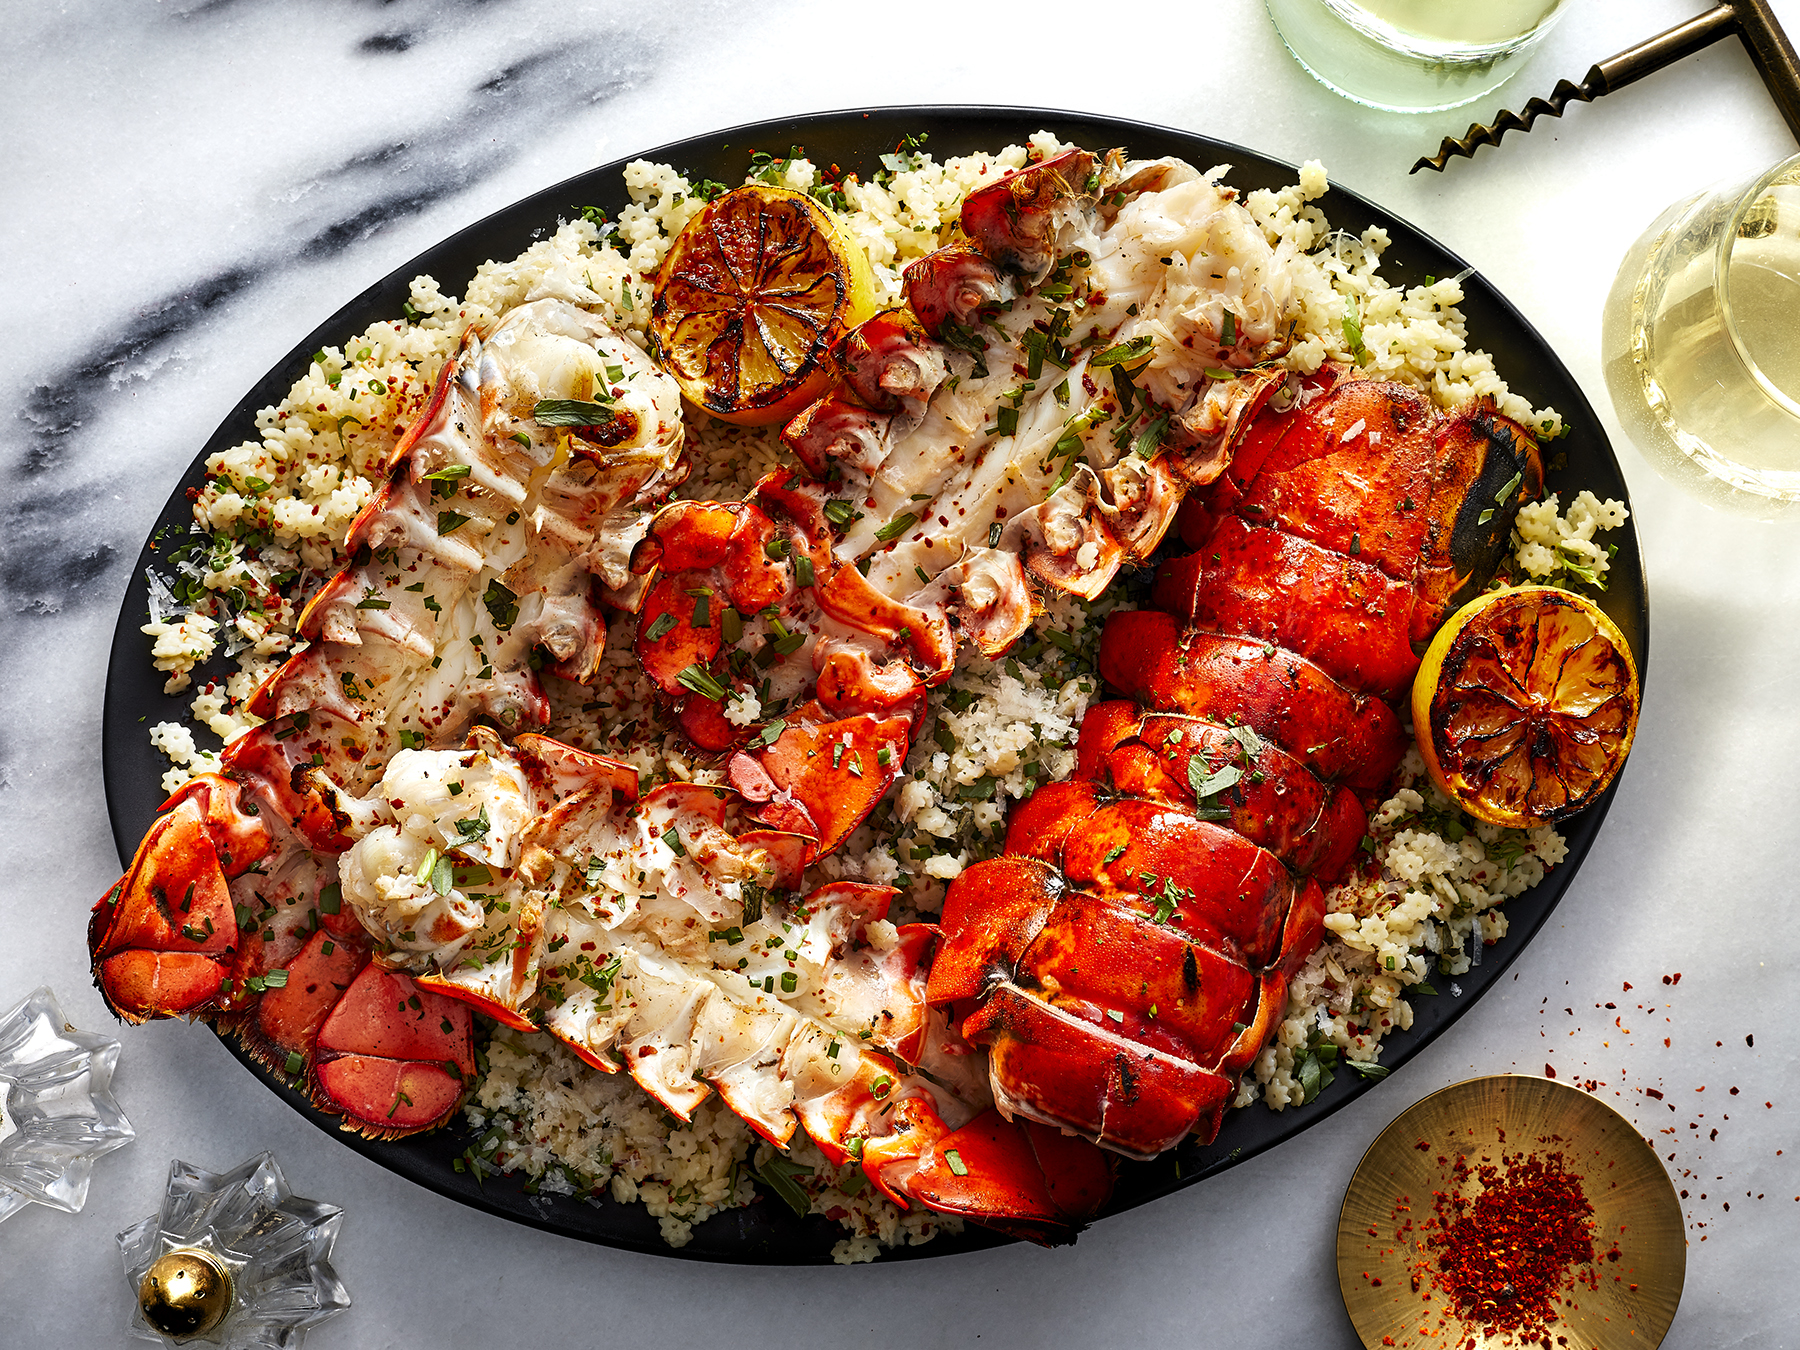 fwcooks-grilled-lobster-tails-with-pasta-recipe-ft-0219.jpg